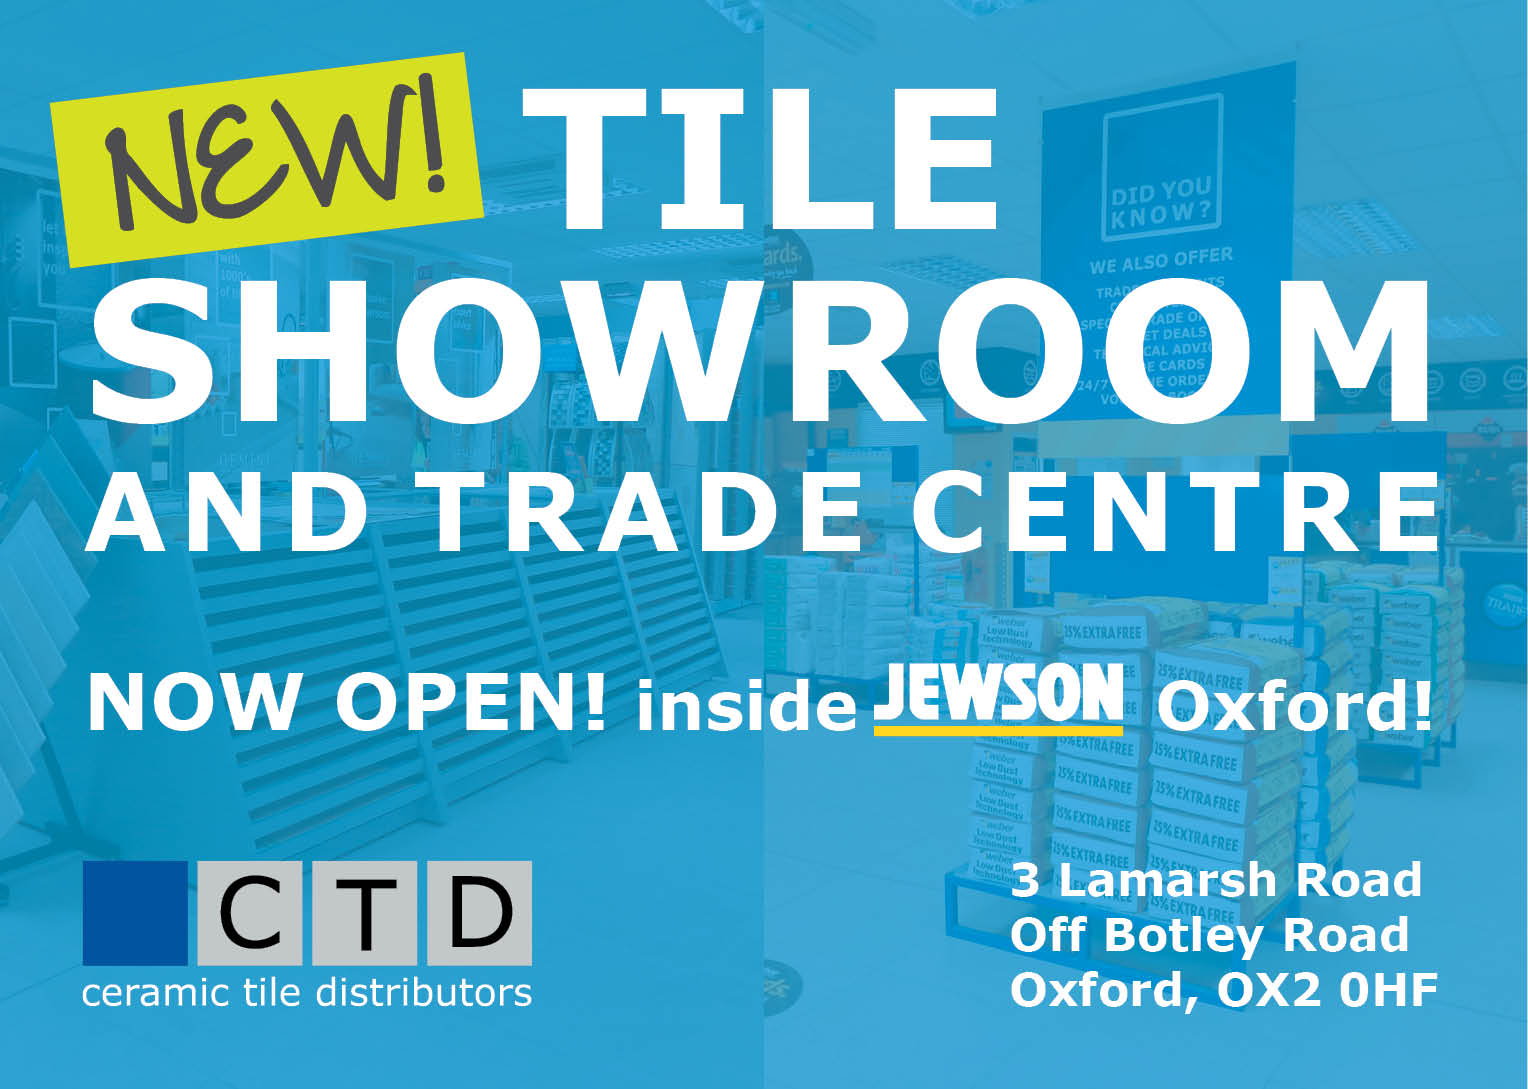 Tile showrooms and trade centres ceramic tile distributors ceramic tile distributors tile showroom and trade centre oxford oxford now open dailygadgetfo Images